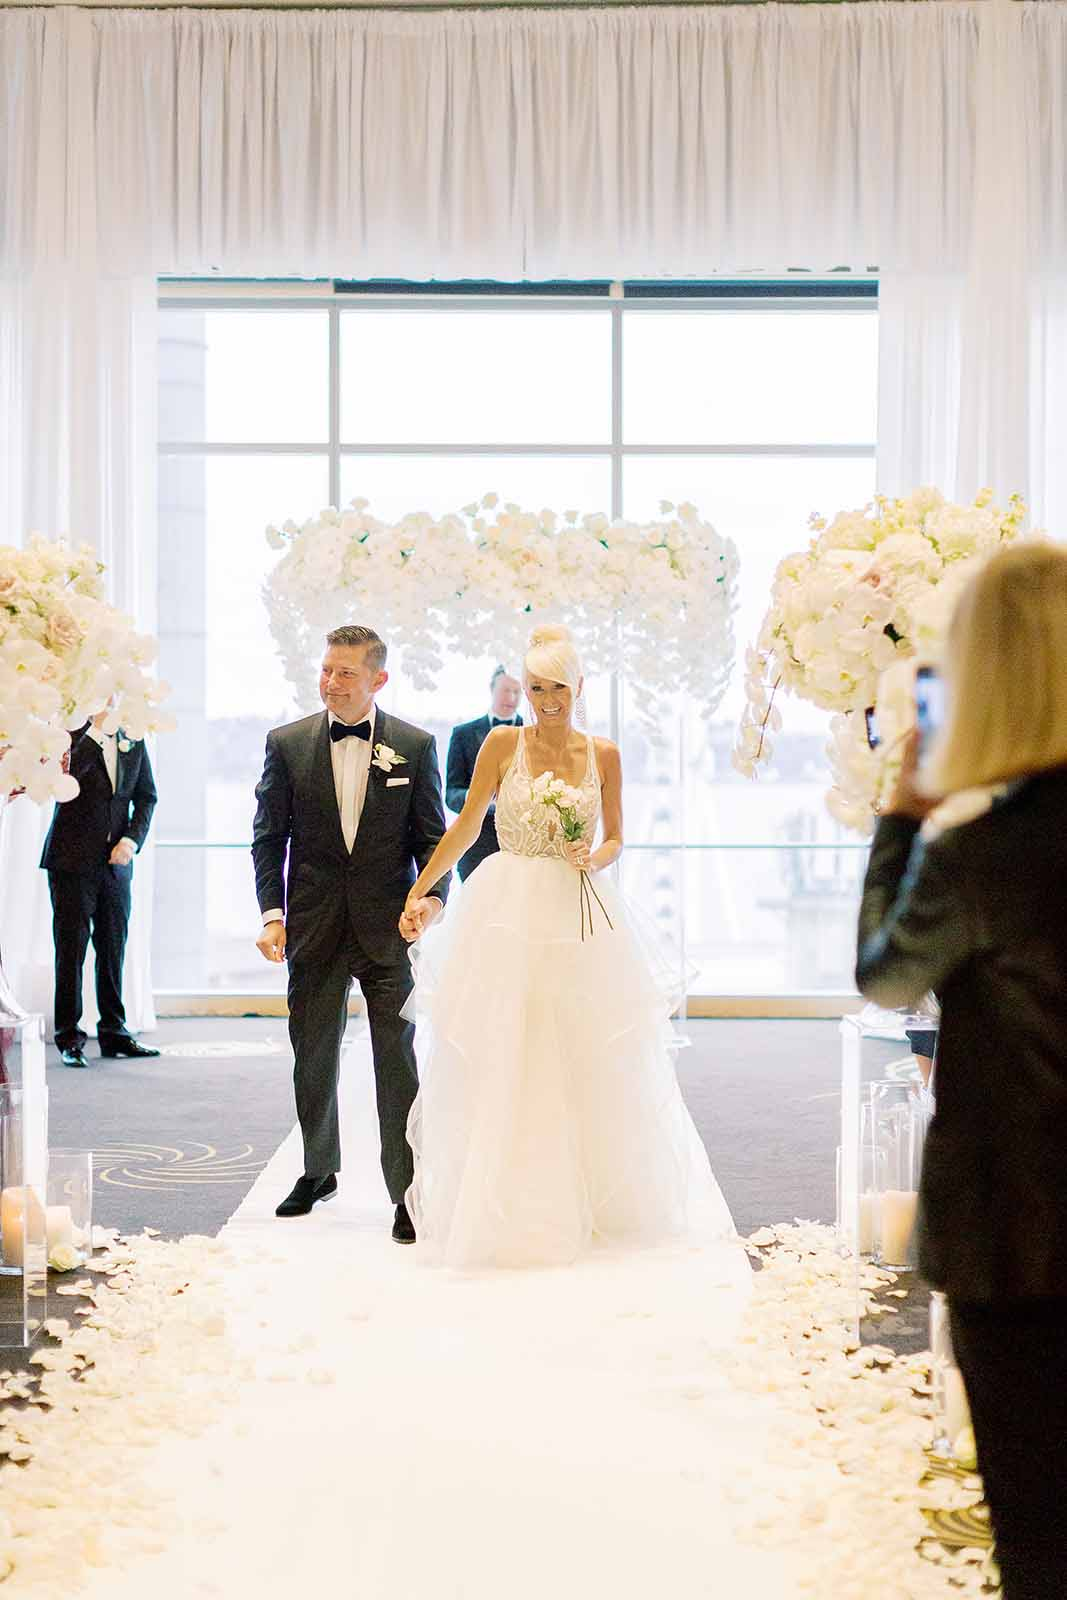 Bride and Groom holding hands in front of white orchid arch on a aisle runner lined with rose petals during their formal ballroom ceremony | Flora Nova Design Seattle